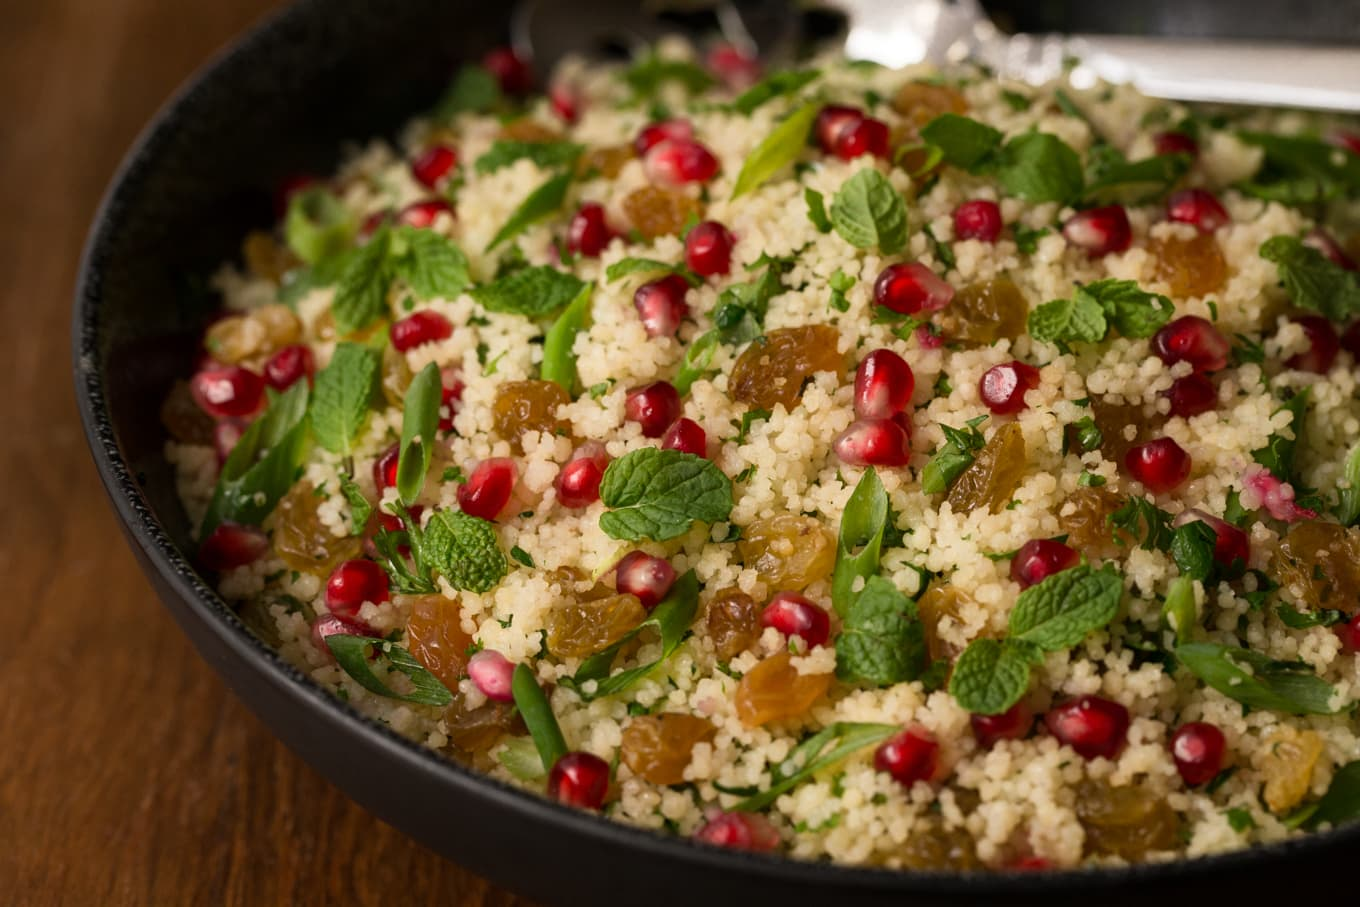 Photo of a bowl of Pomegranate Parsley Couscous Salad on a wood table.